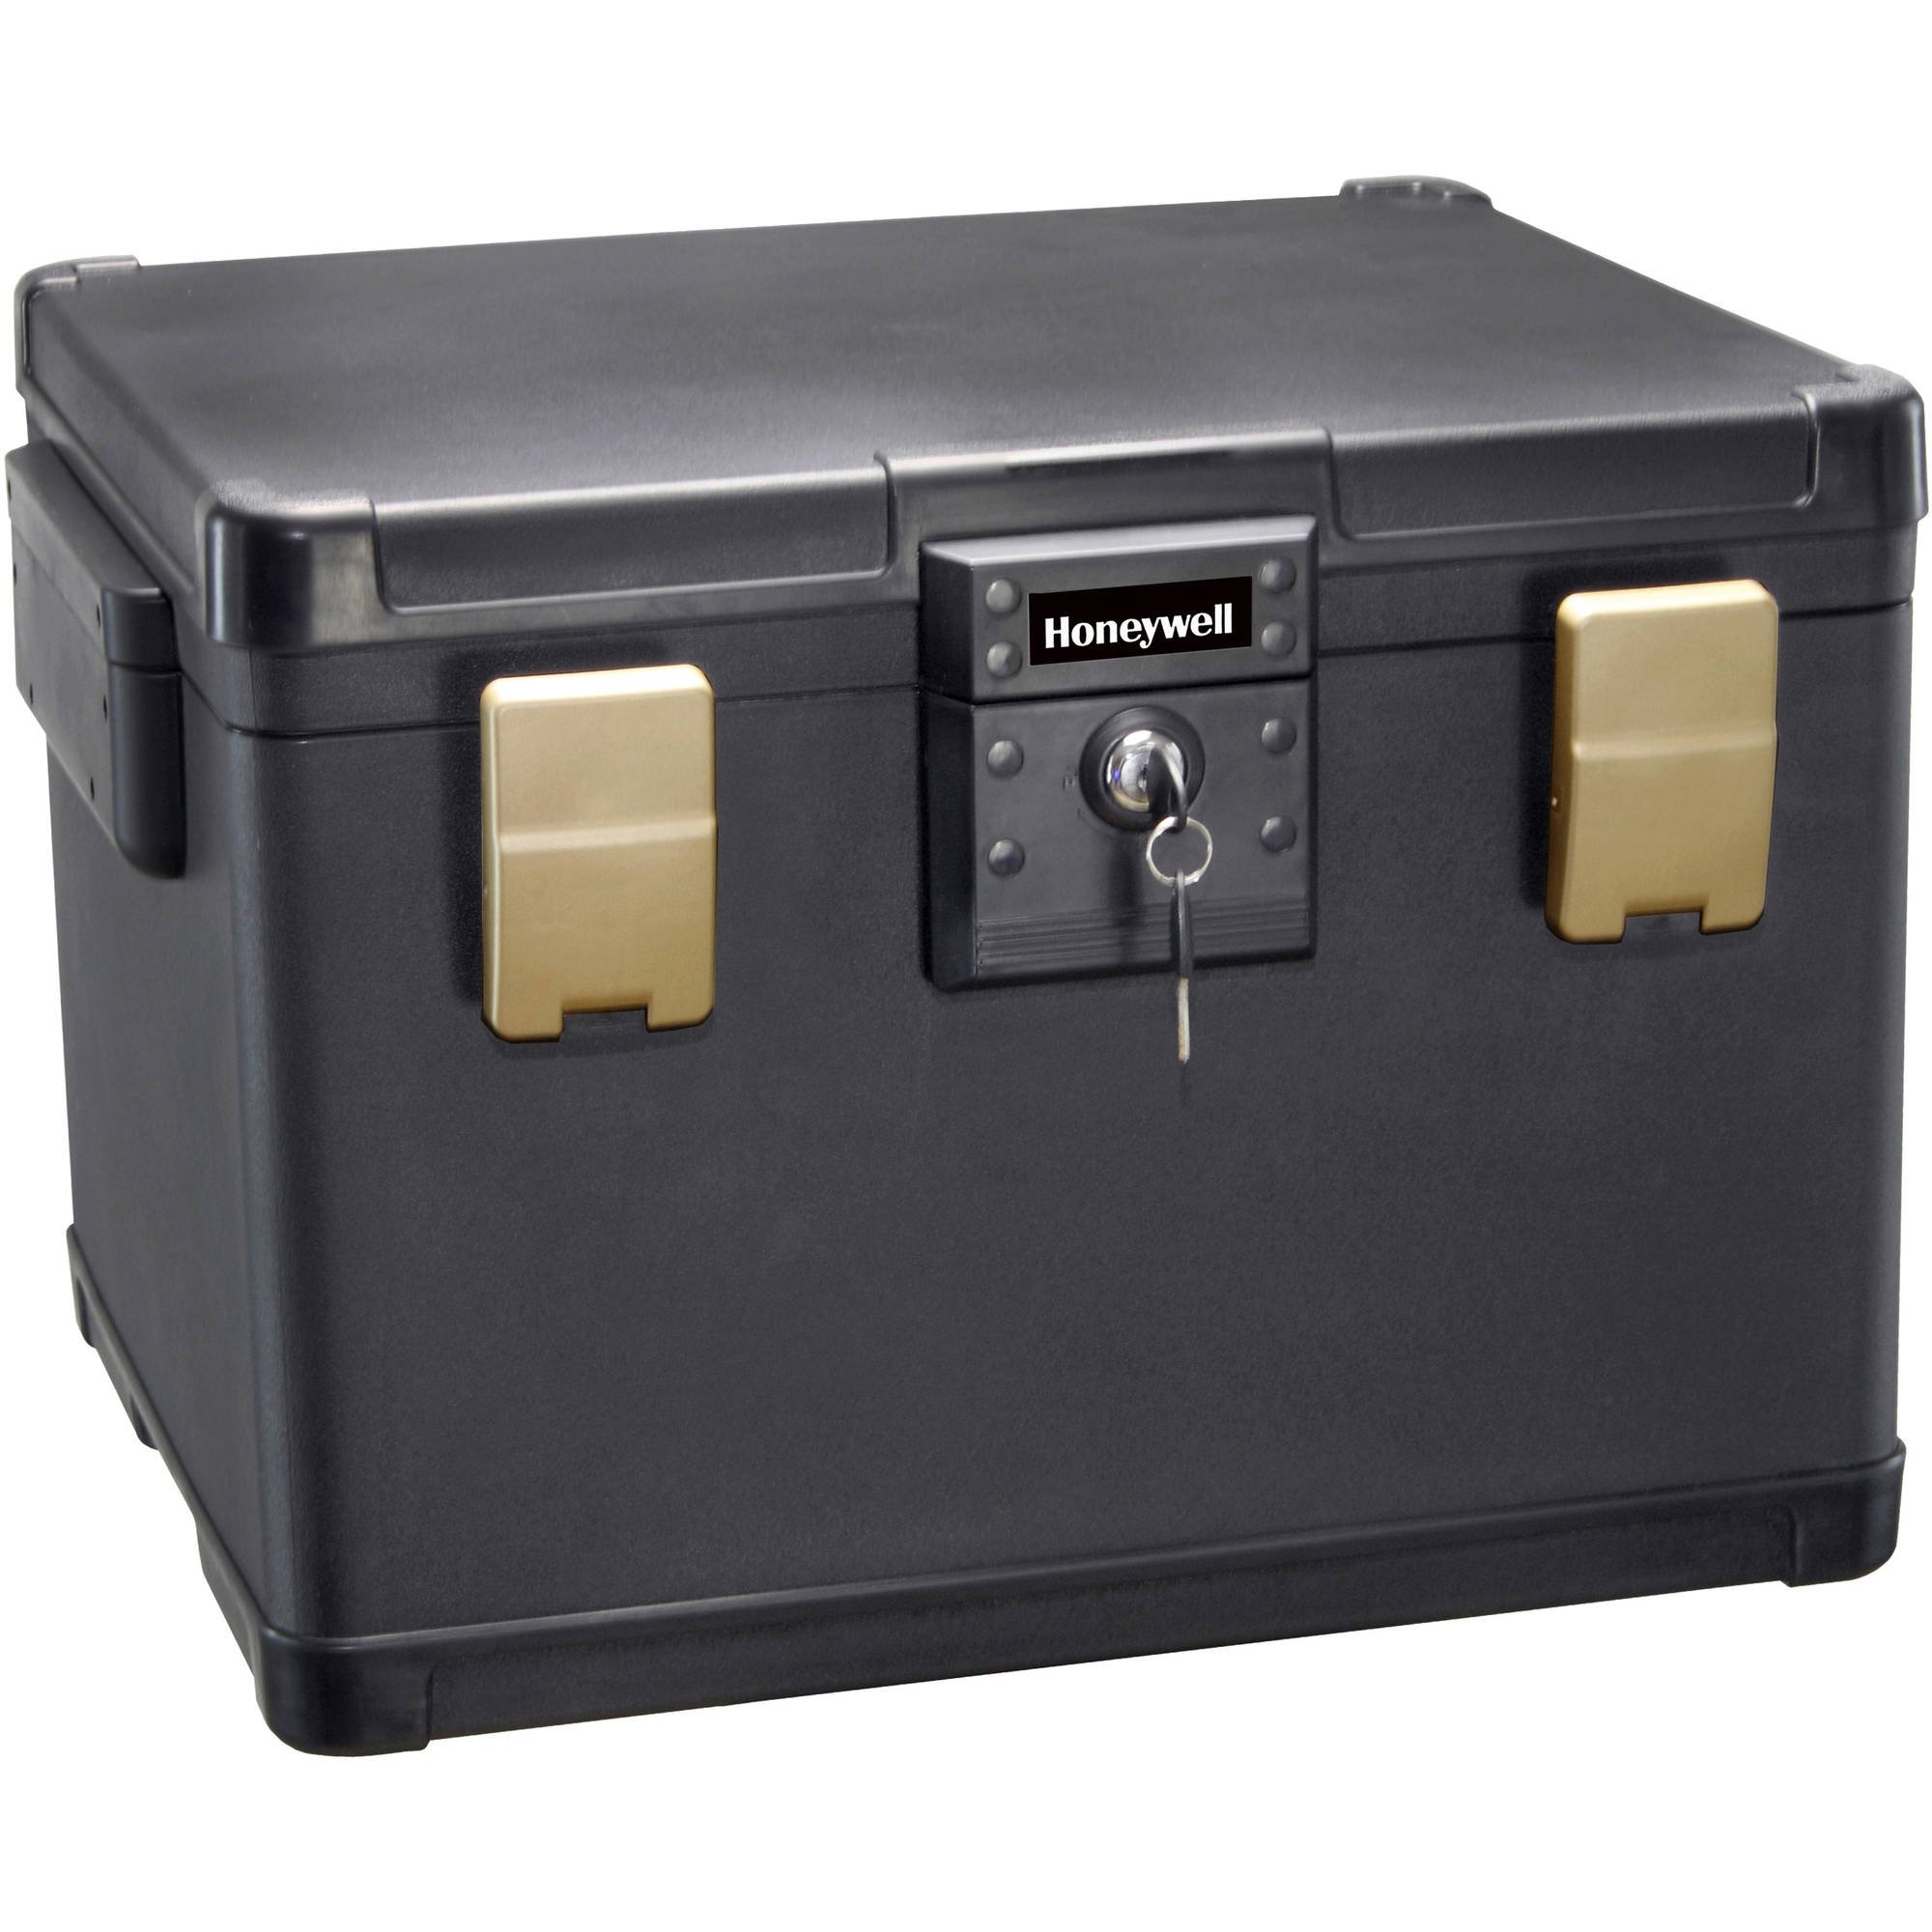 Honeywell 1.06 cu ft Legal Size Waterproof 1-Hour Fire File Chest, 1108